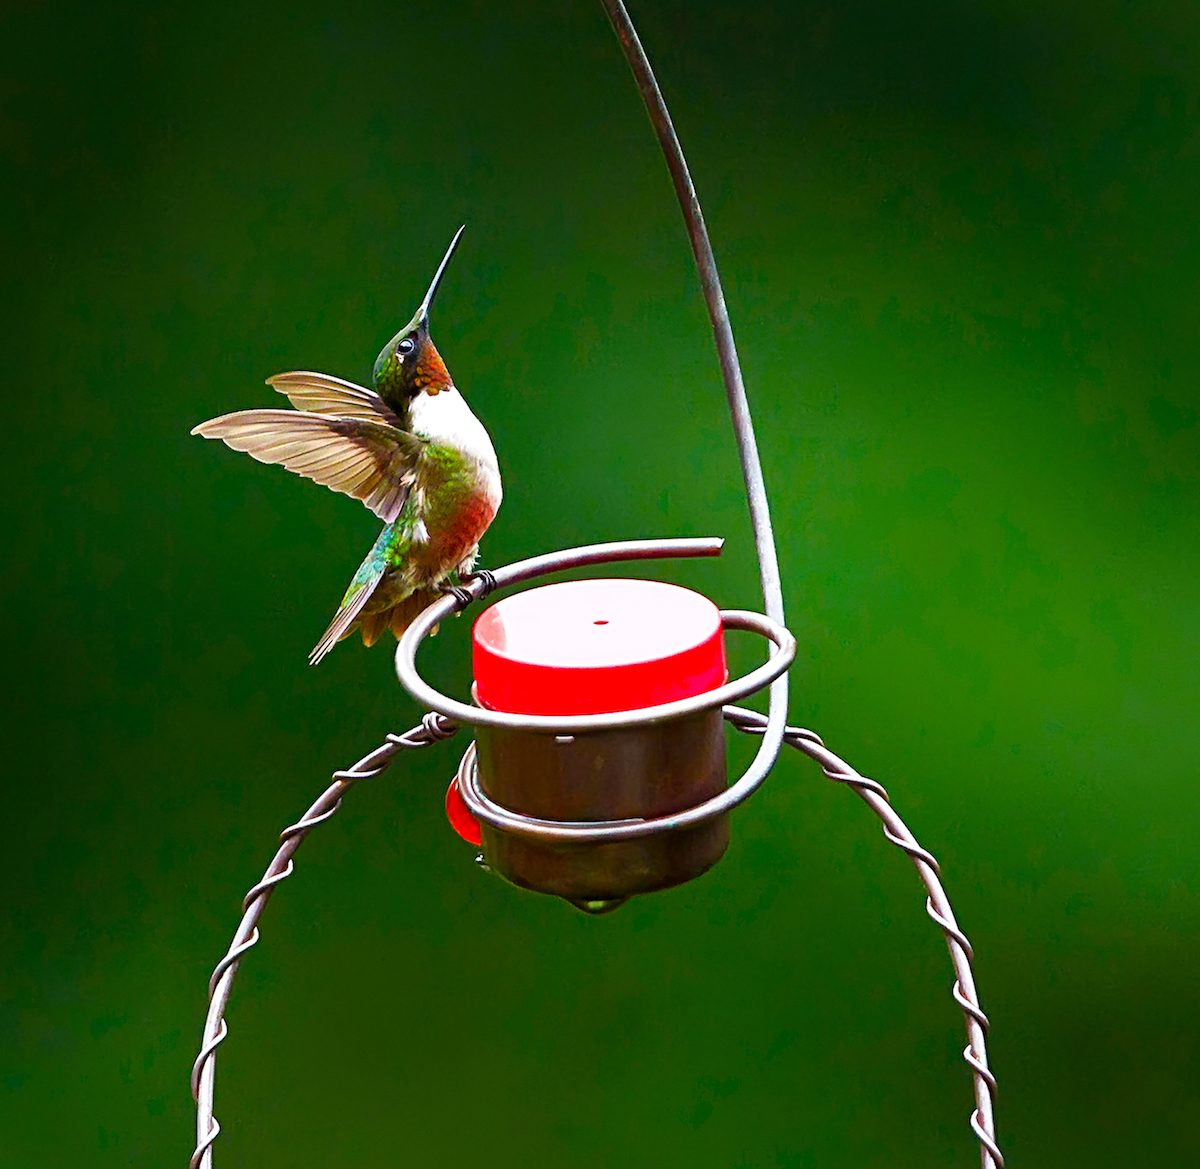 A male ruby-throated hummingbird spreads his wings while sitting on a hummingbird feeder.